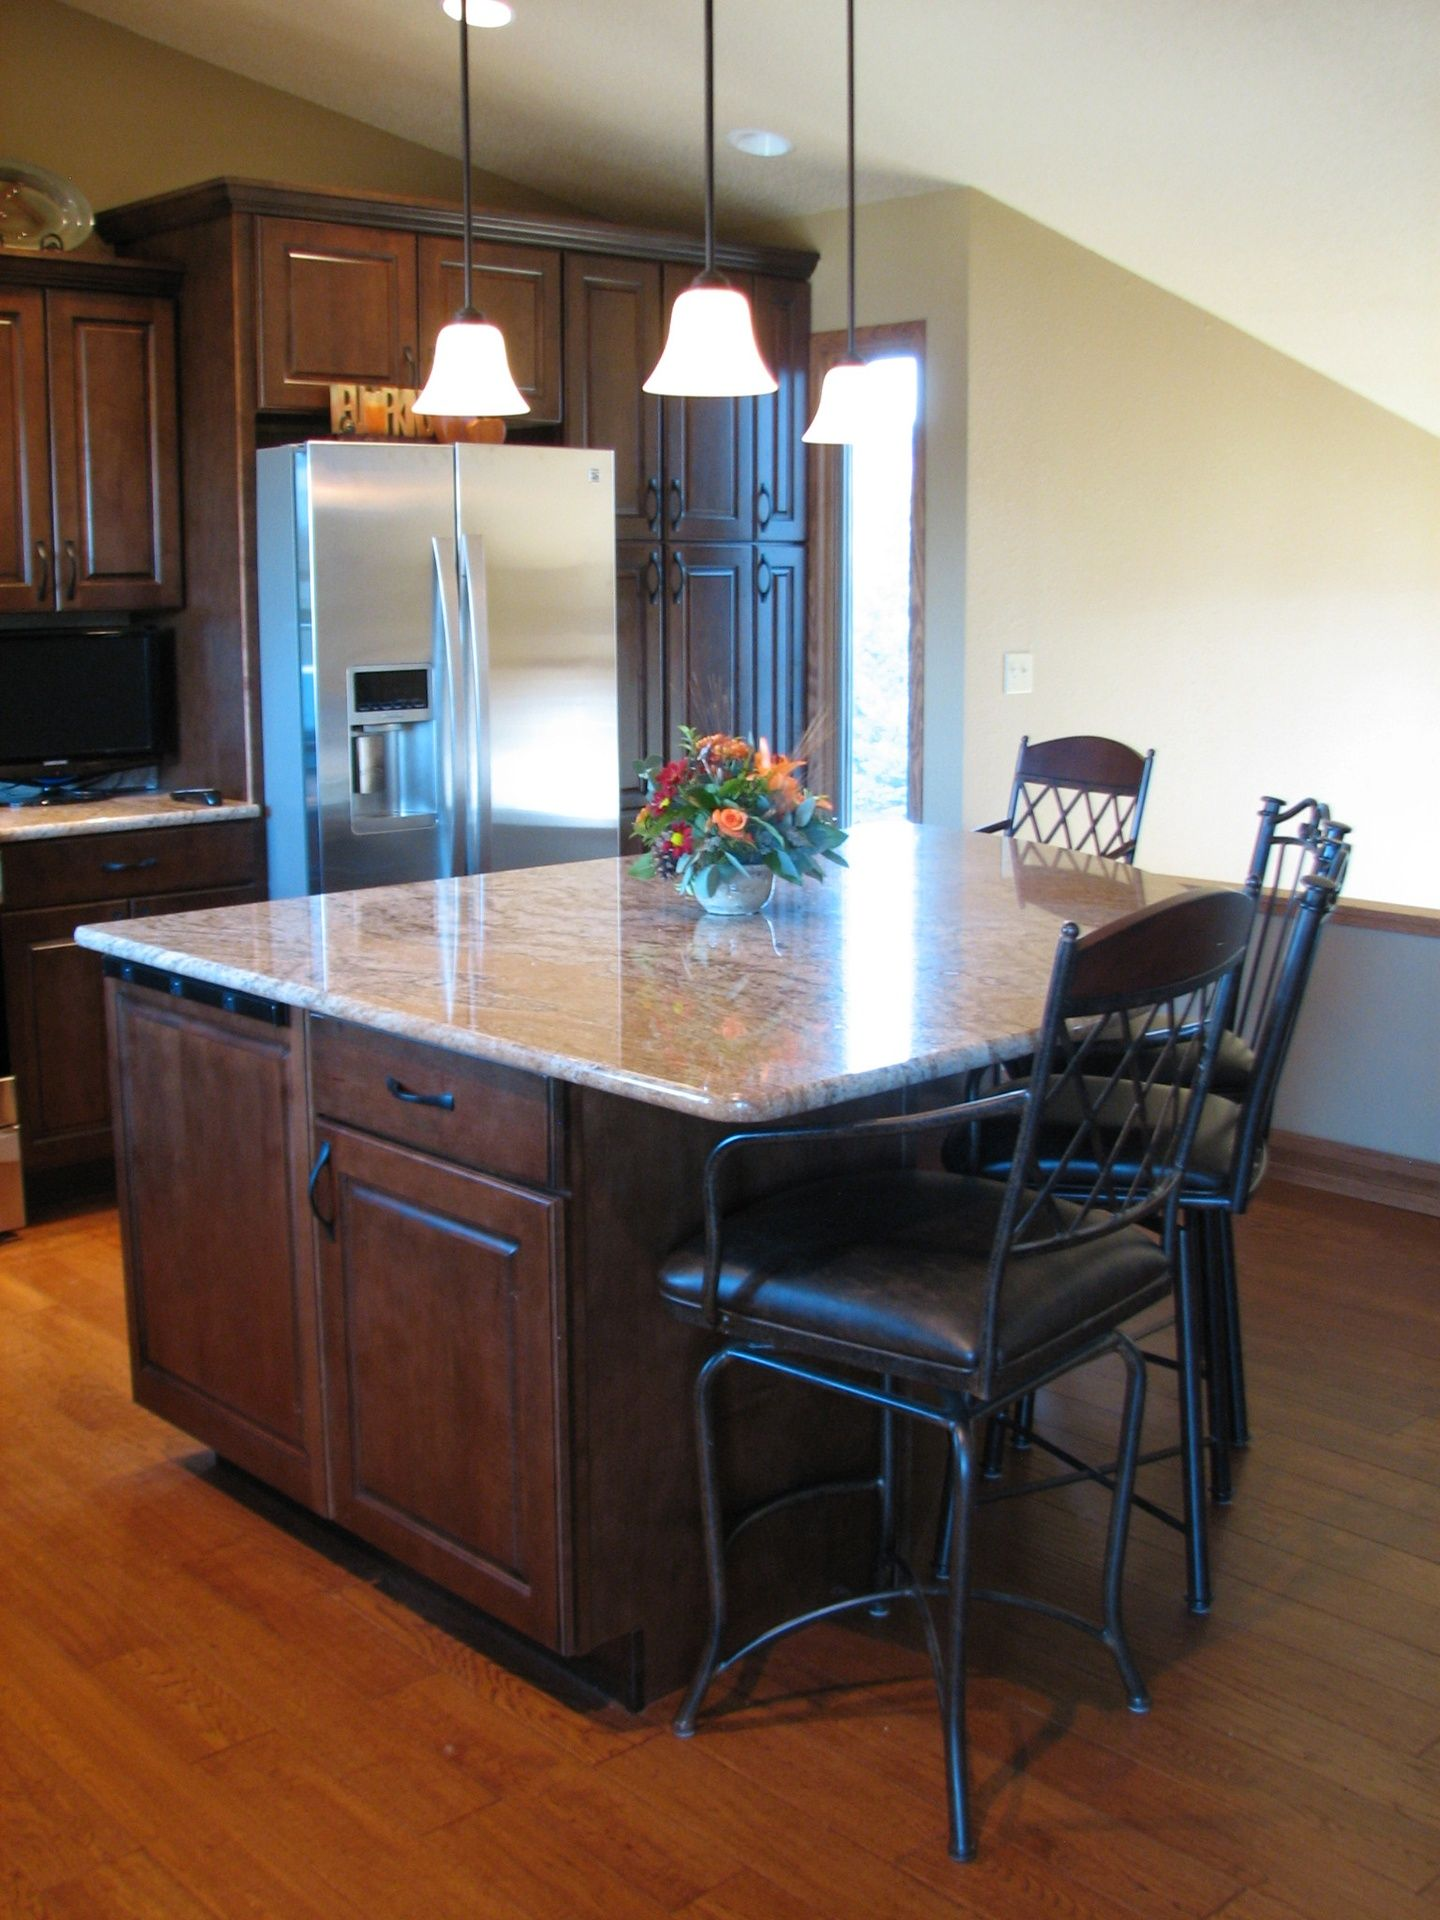 Mid continent cabinetry species maple door style - Mid continent cabinets ...